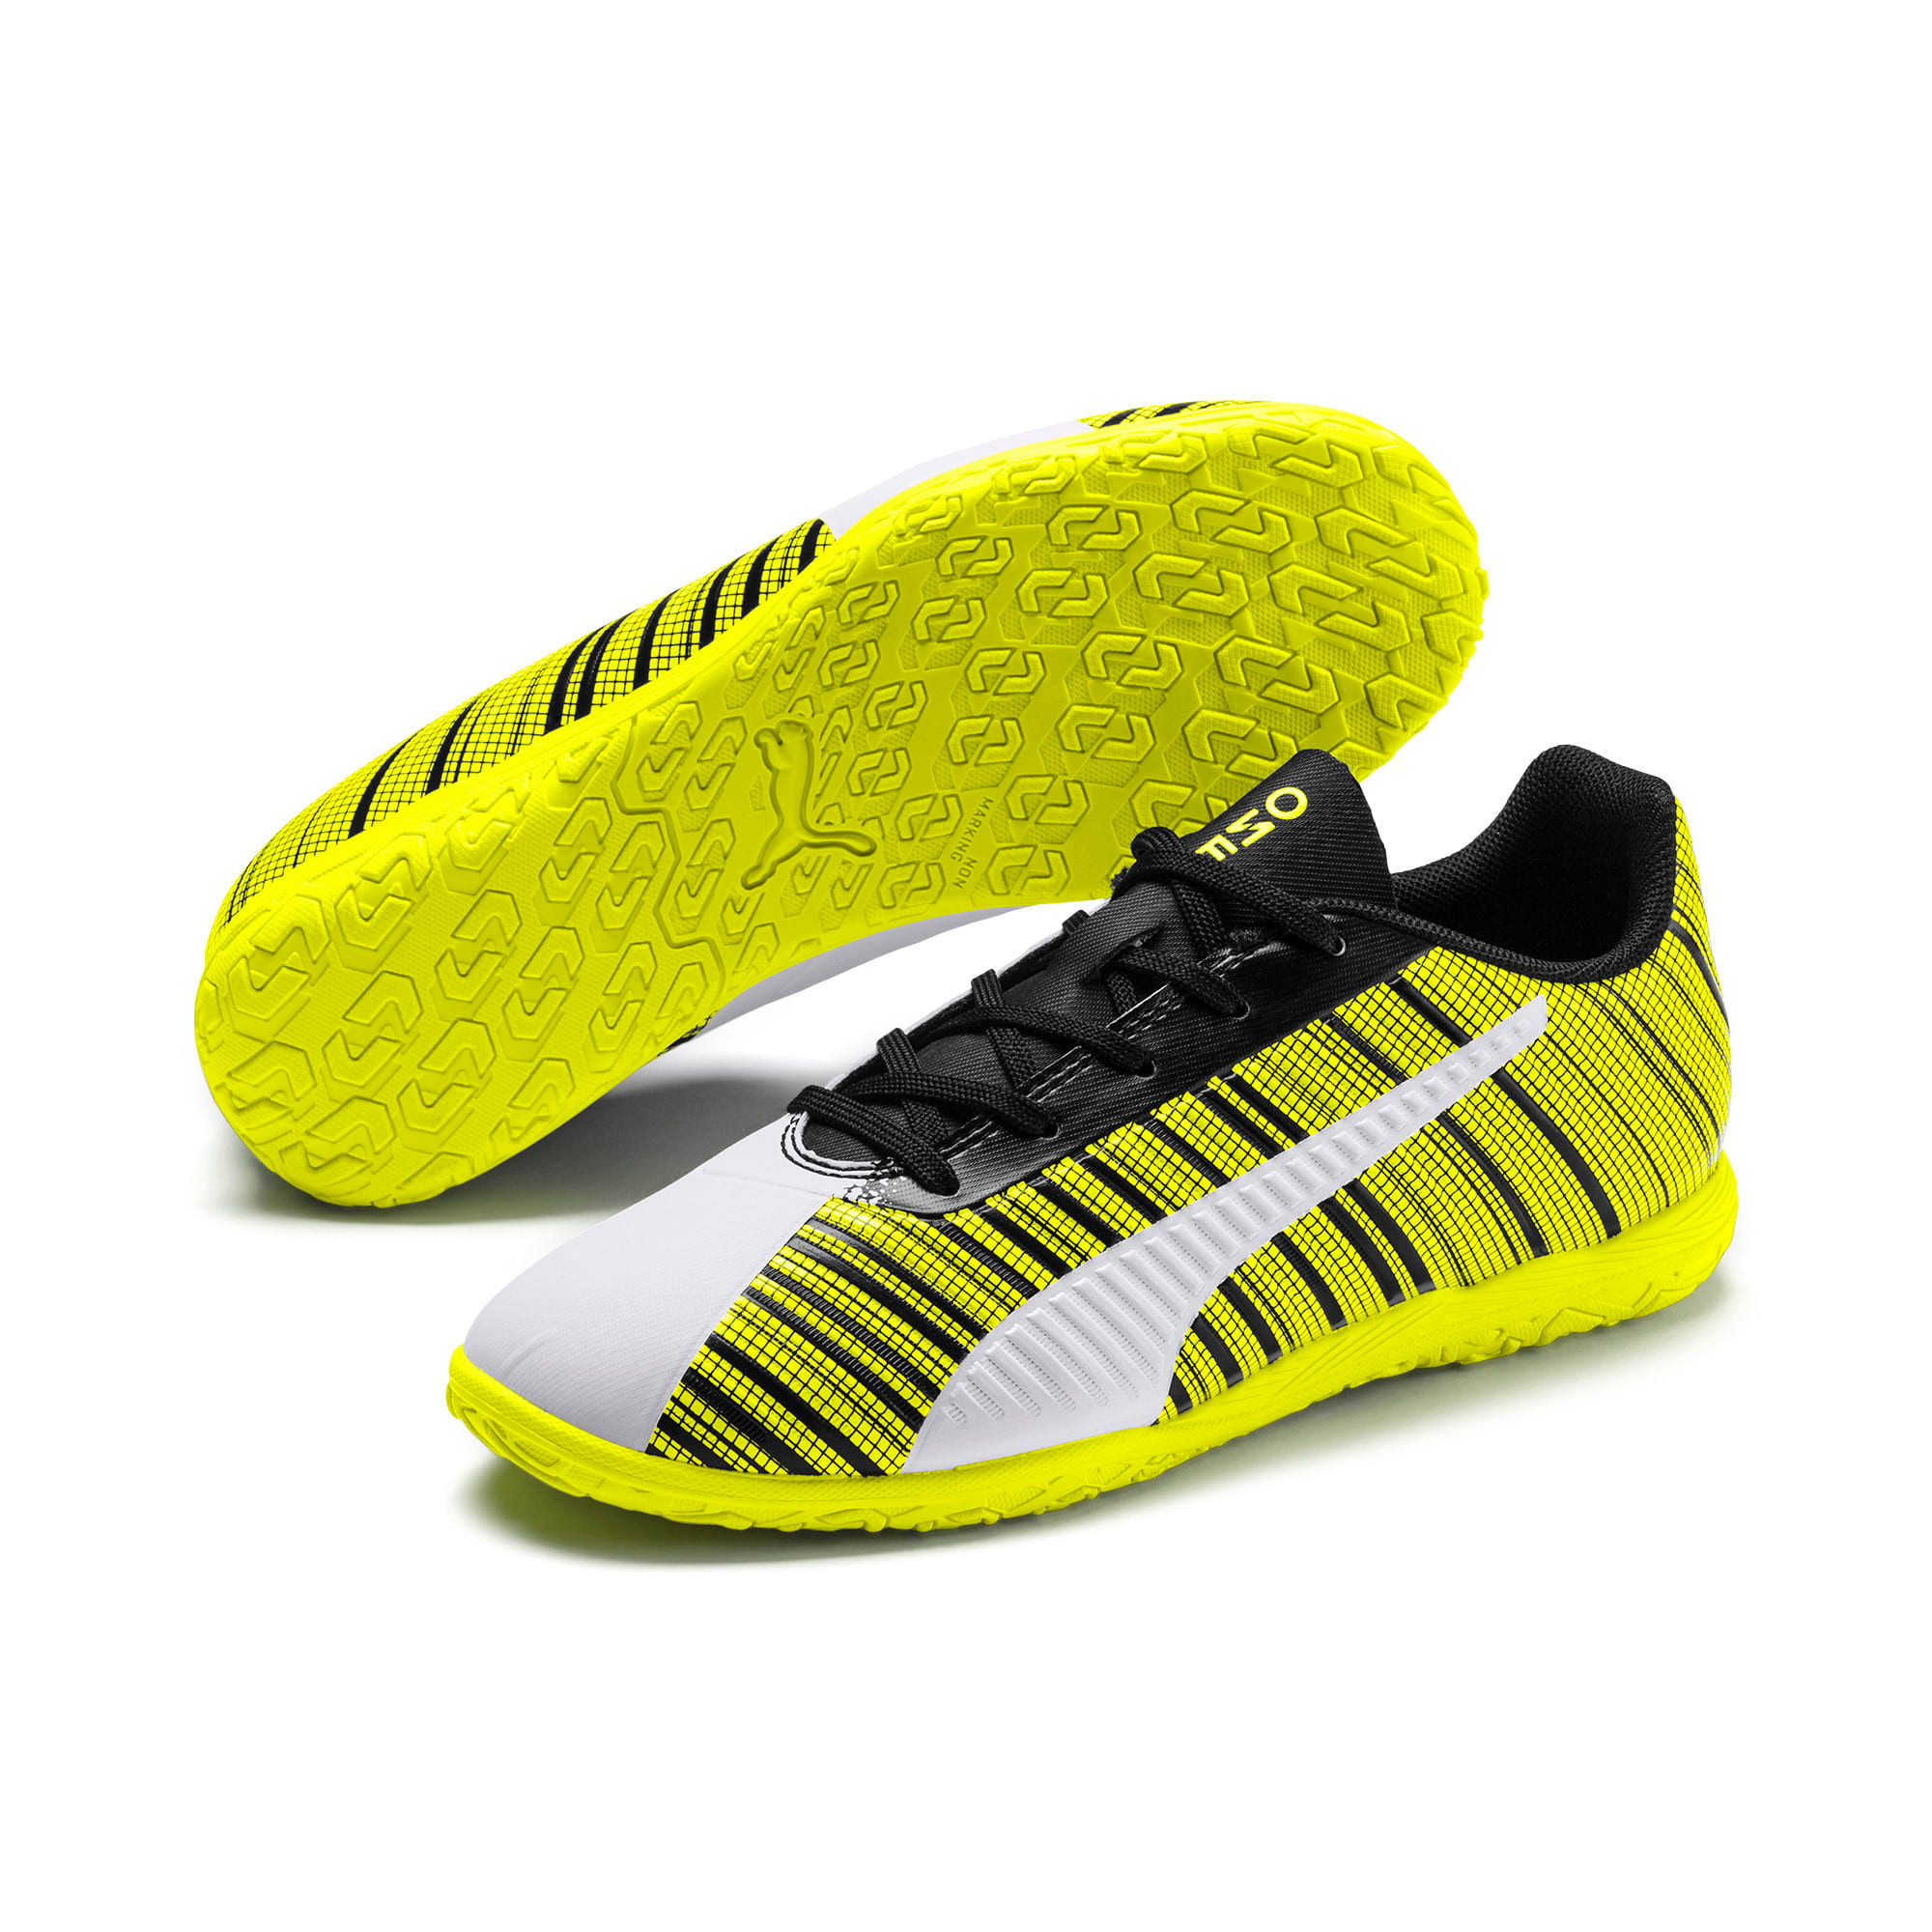 Thumbnail 2 of PUMA ONE 5.4 IT Youth Football Boots, White-Black-Yellow Alert, medium